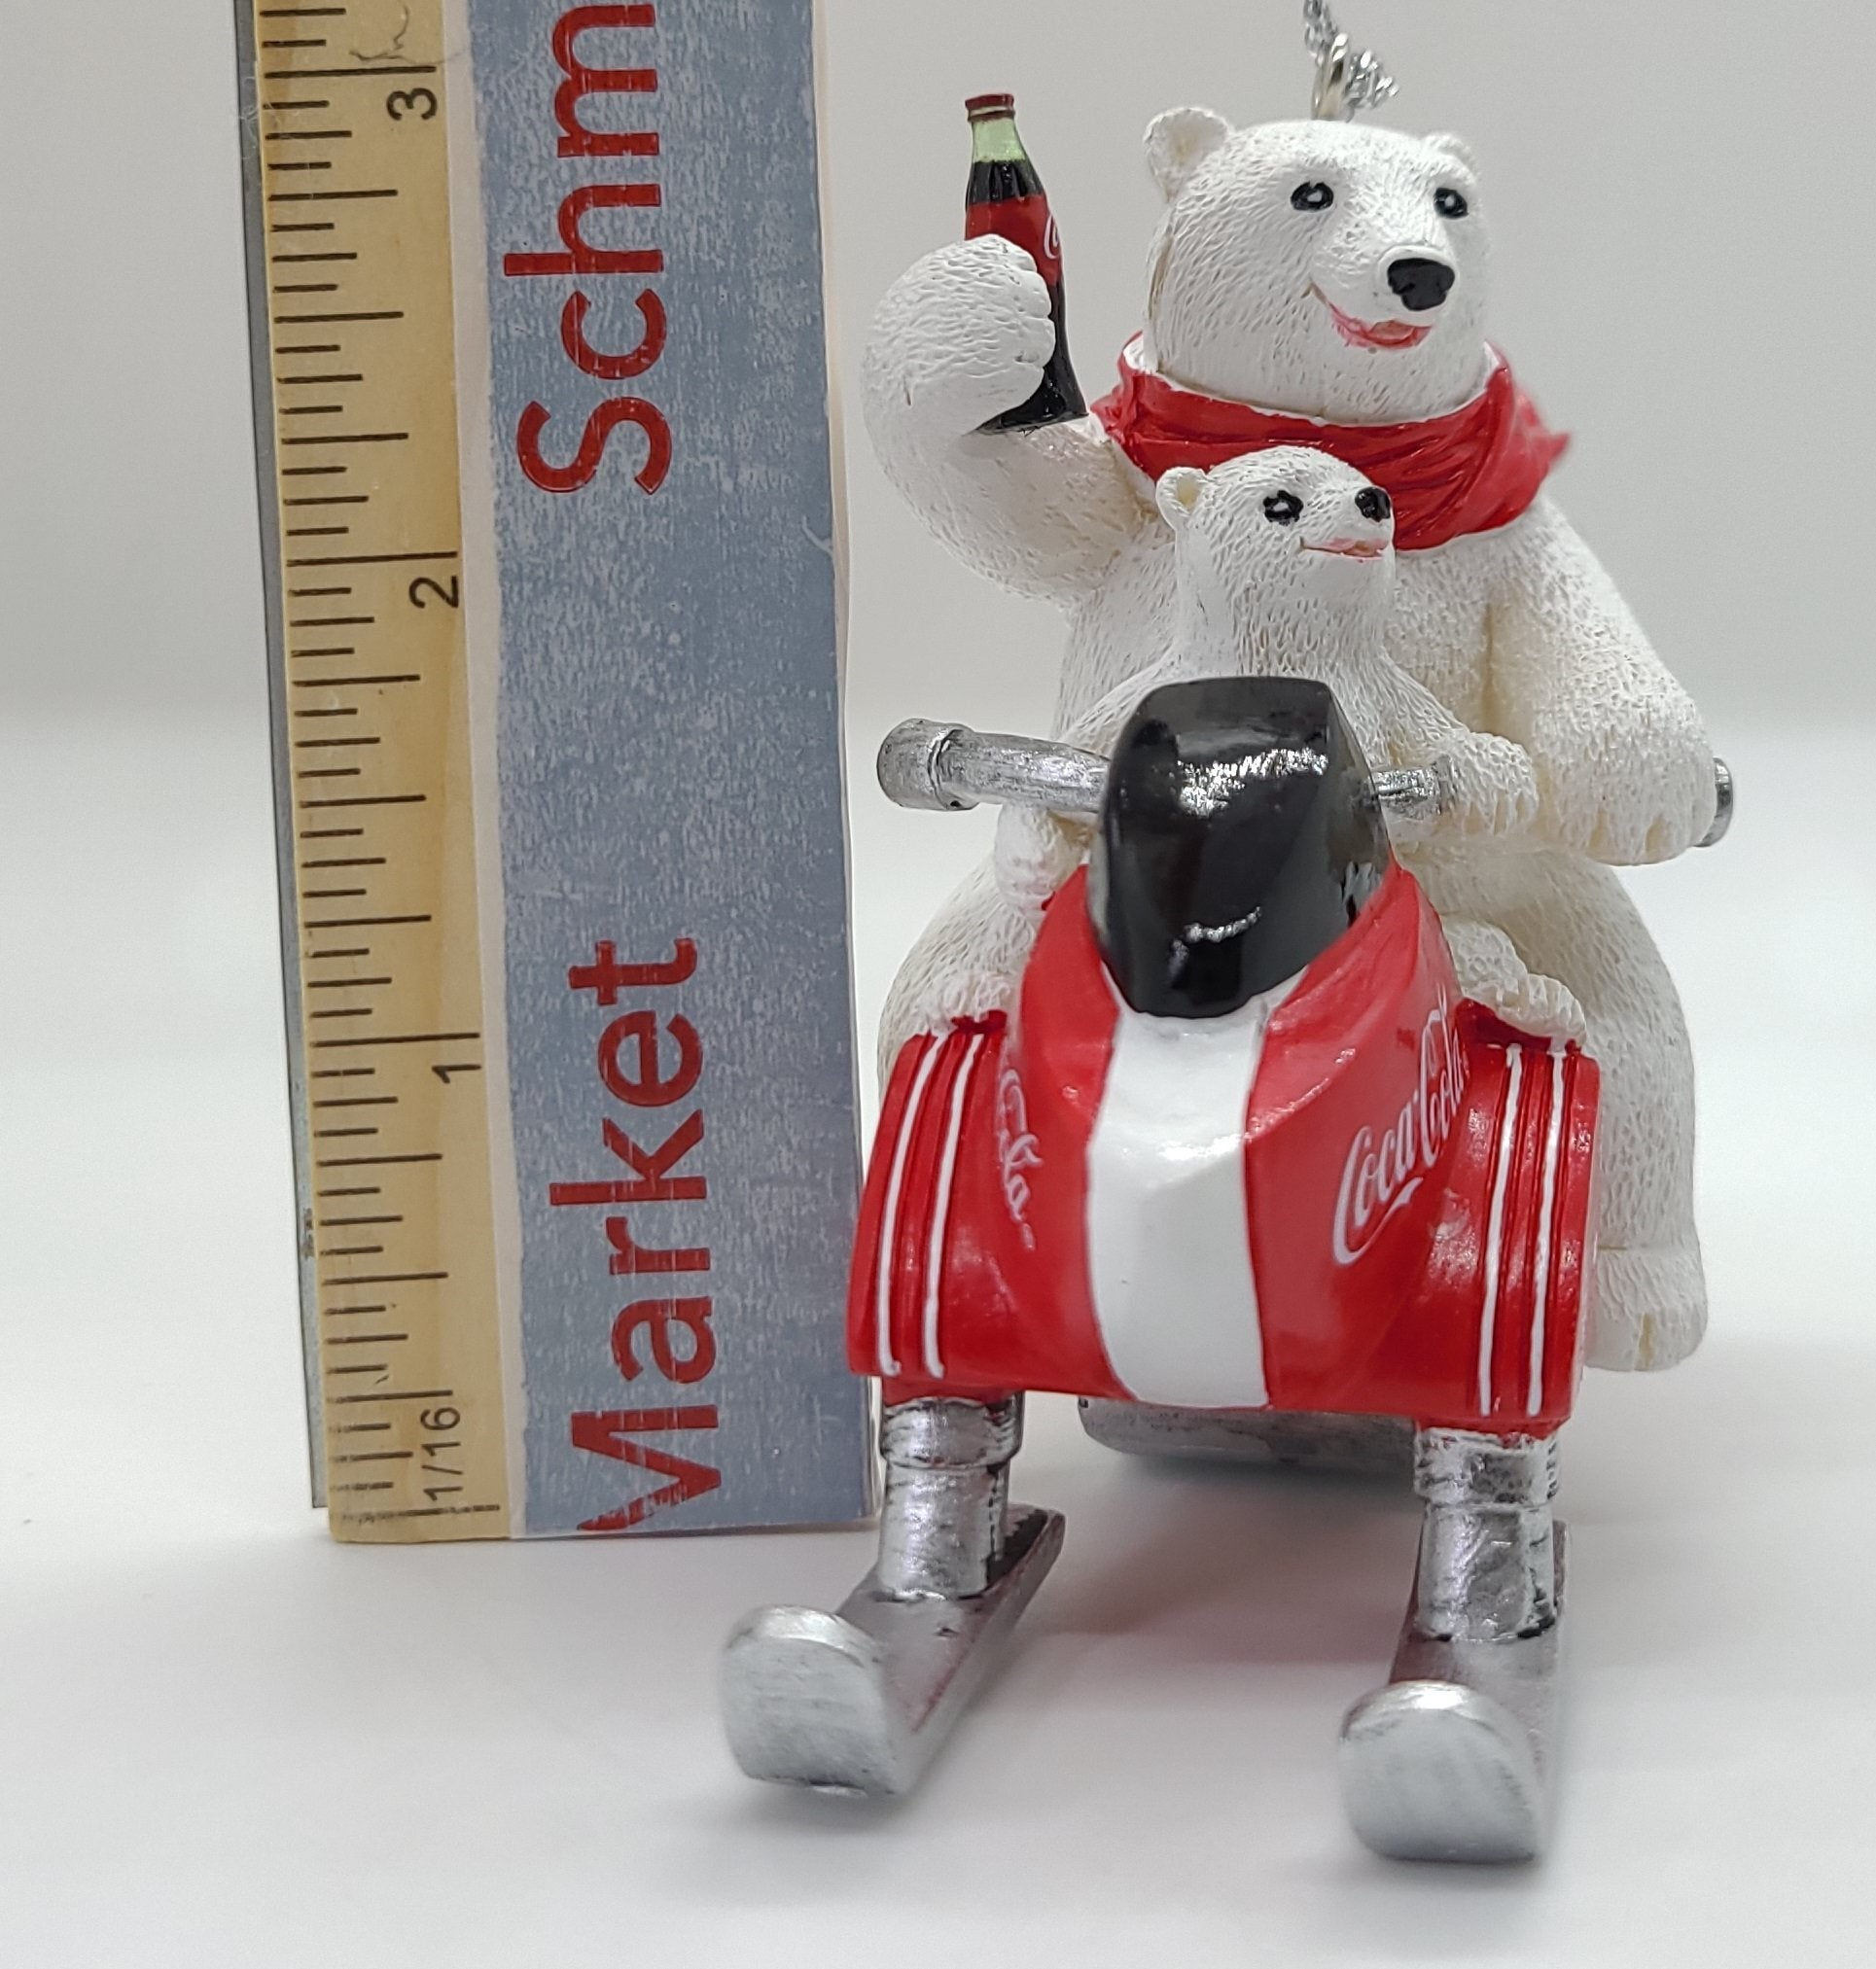 Kurt Adler Coca-Cola Polar Bear With Cub Riding Snow Mobile Ornament - Schmidt Kirihimete Kirihimete Whakapaipai Kirihimete